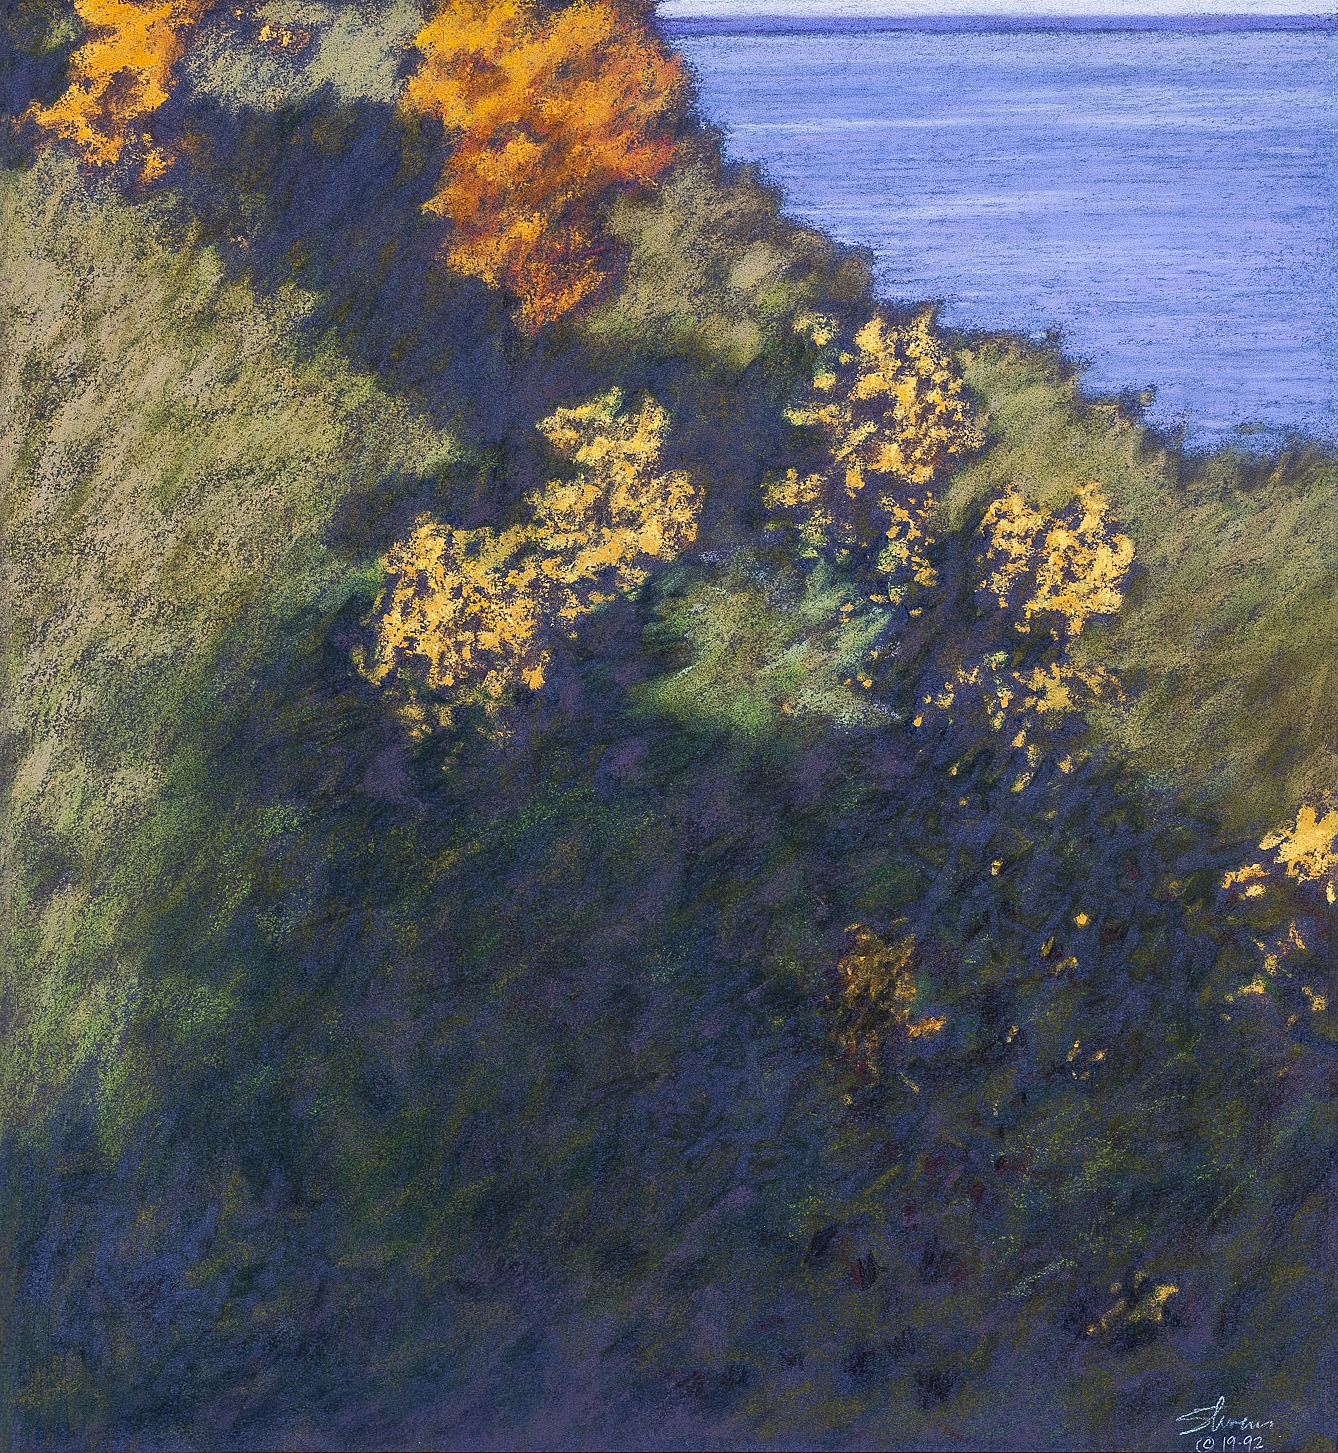 Approaching the Lake | pastel on paper | 16 x 15"